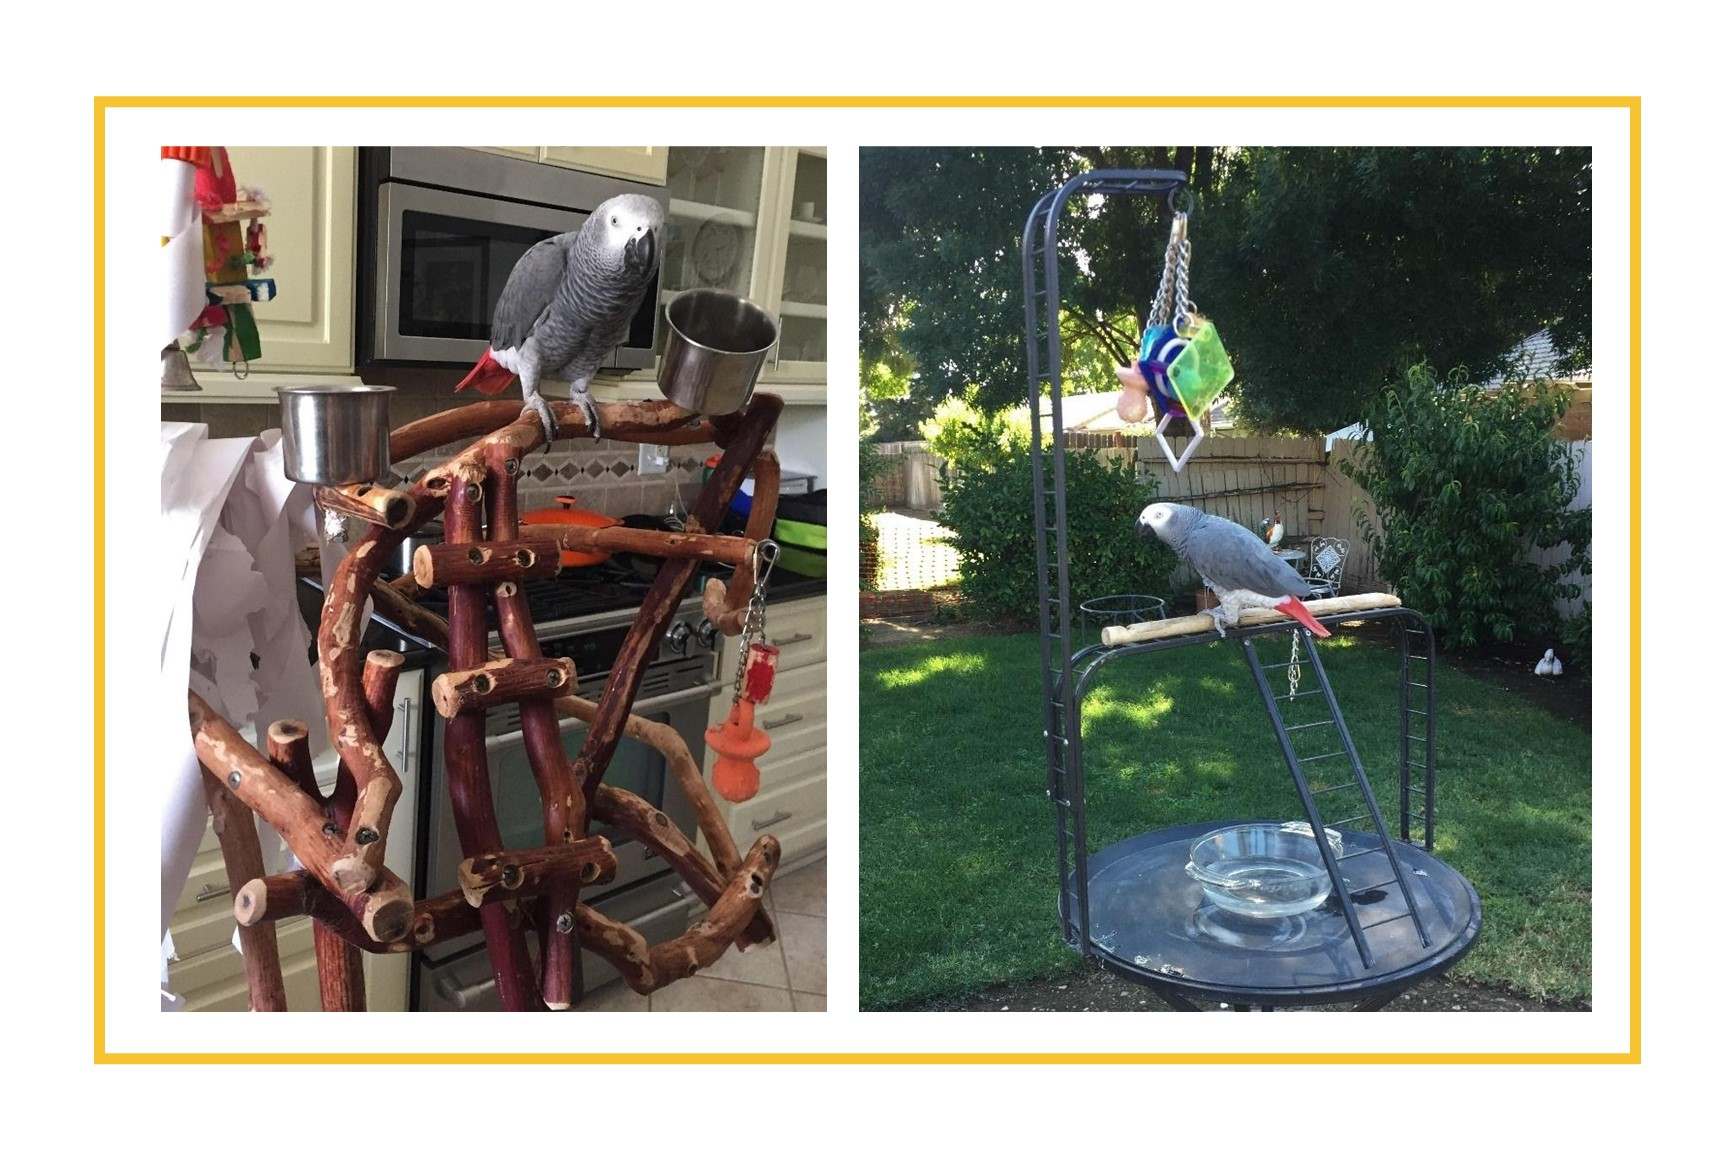 Two photos of parrot on tree stand with toys-inside and outside of the home